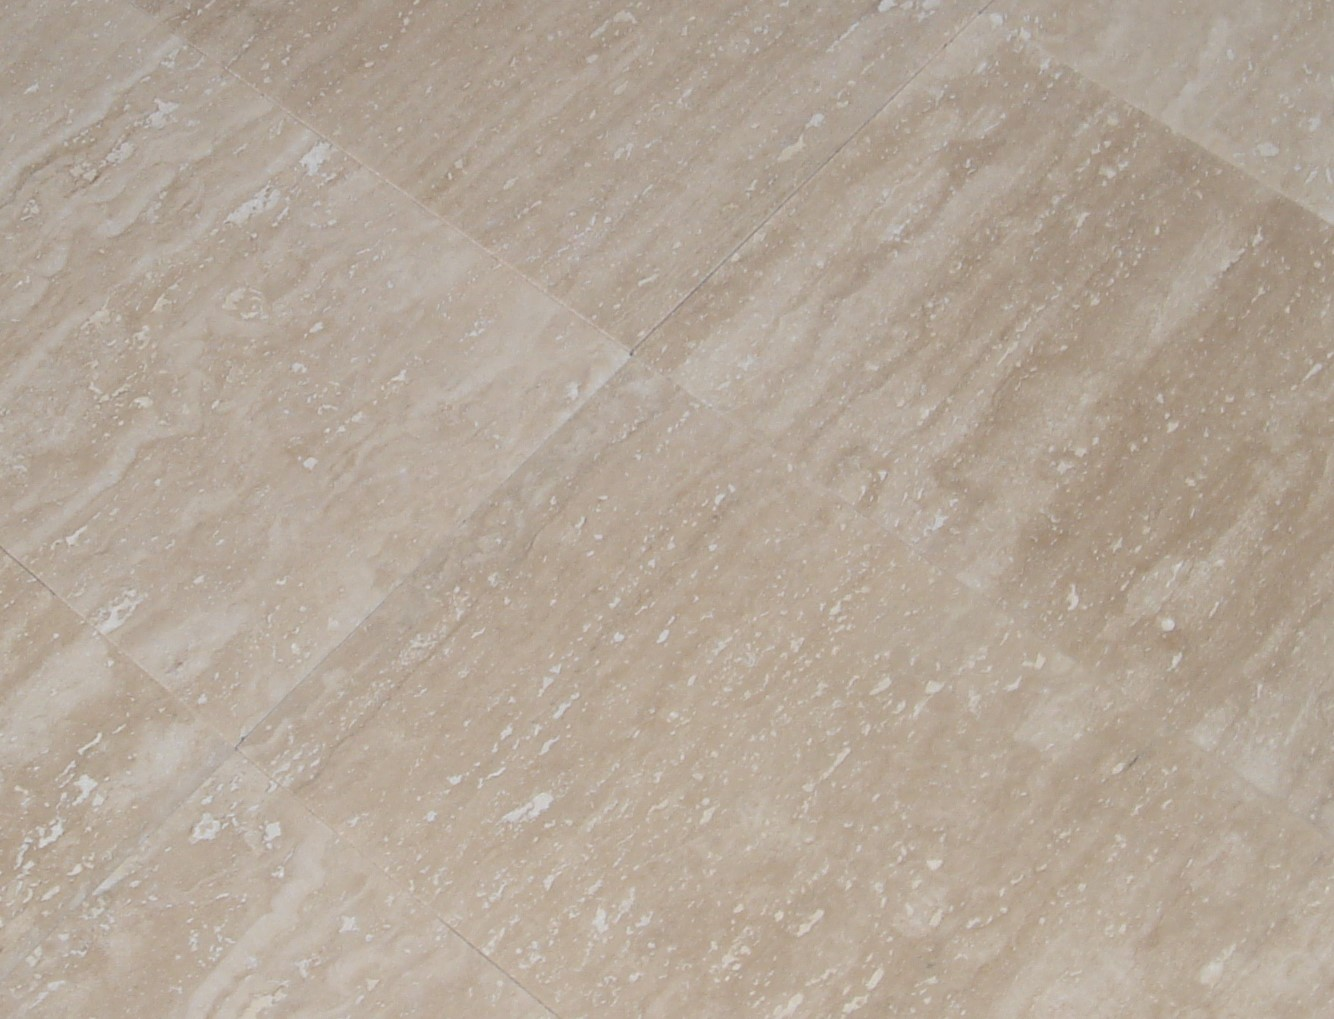 Travertine Noche Travertine Honed Tiles